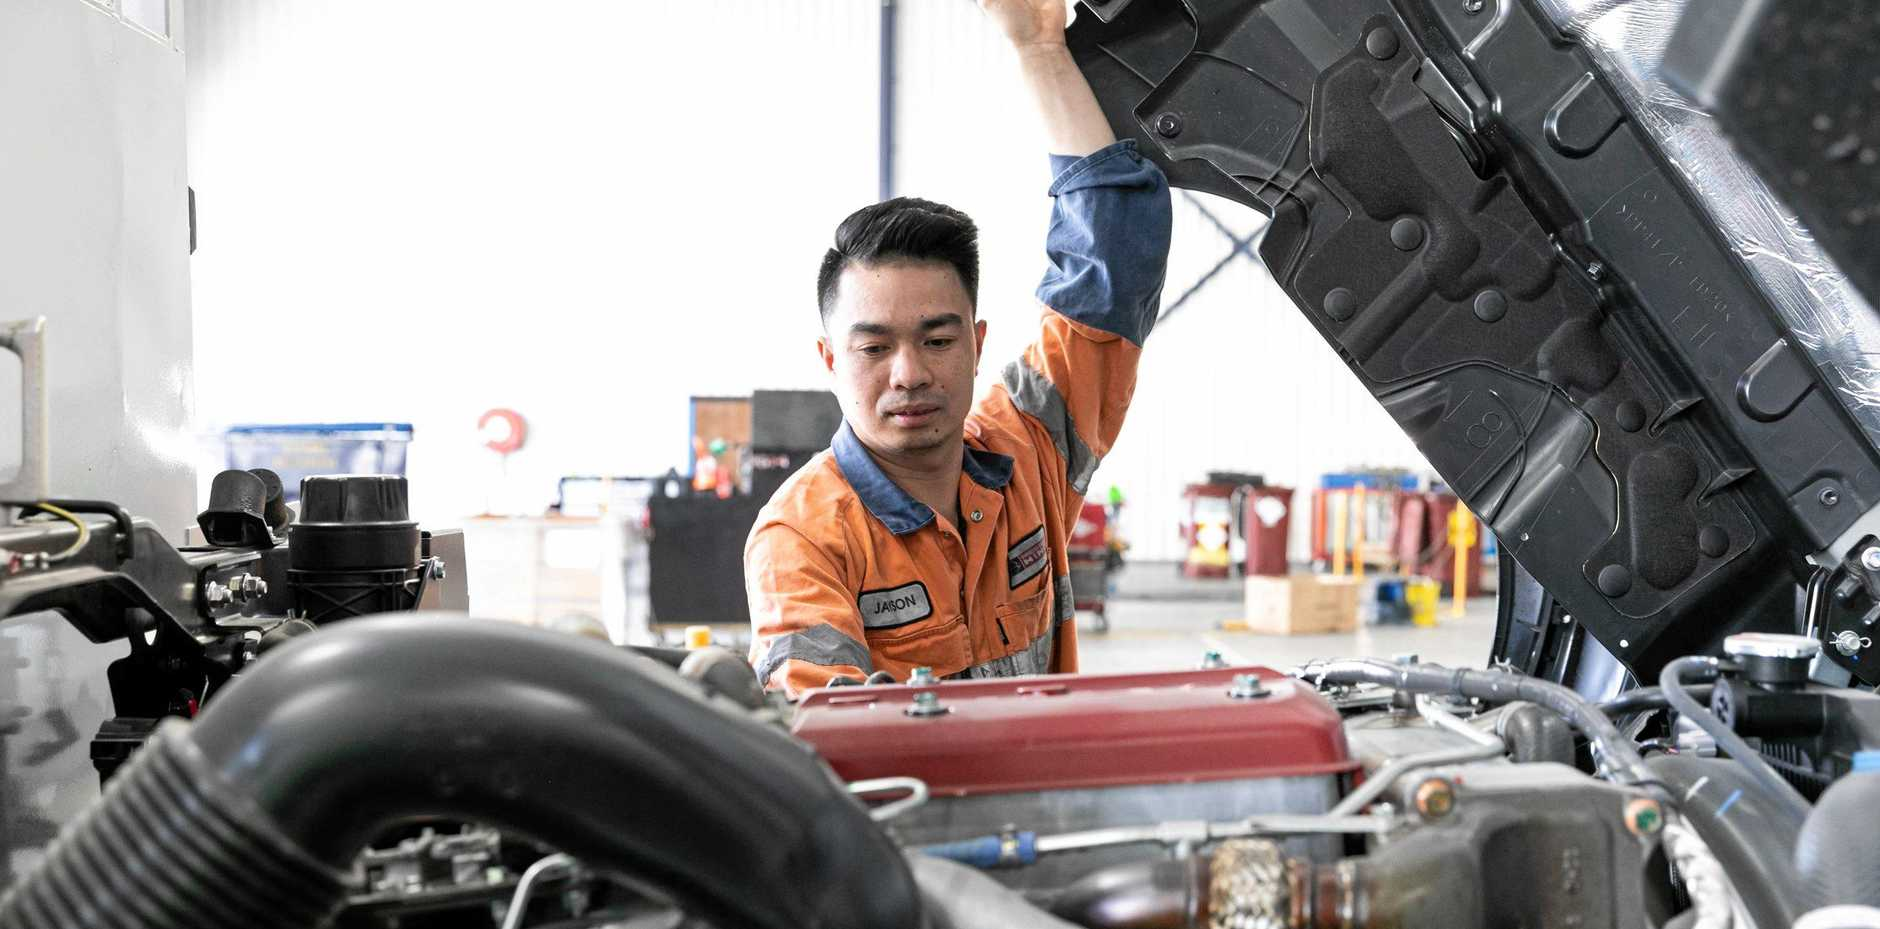 NEW APPROACH: Hino Australia has initiated a new international recruitment program to address the national shortage of skilled heavy vehicle mechanics.